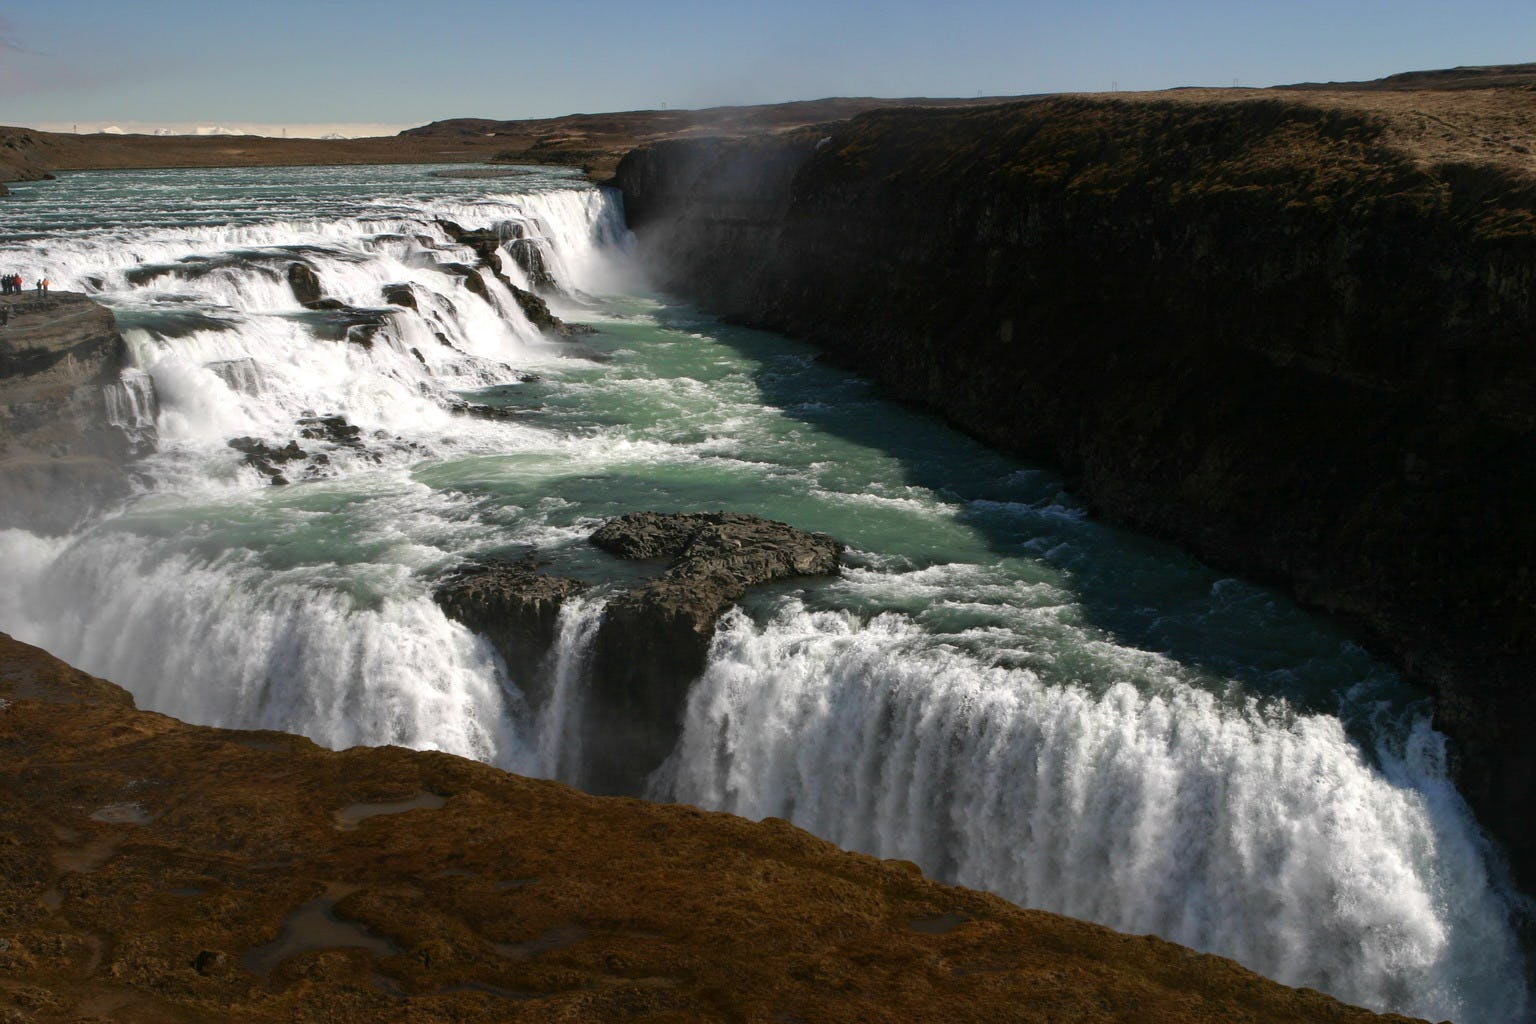 The Golden Circle Day Tour includes the three most visited attractions in the whole country: Þingvellir National Park (UNESCO), Geysir geothermal area and Gullfoss Waterfall.